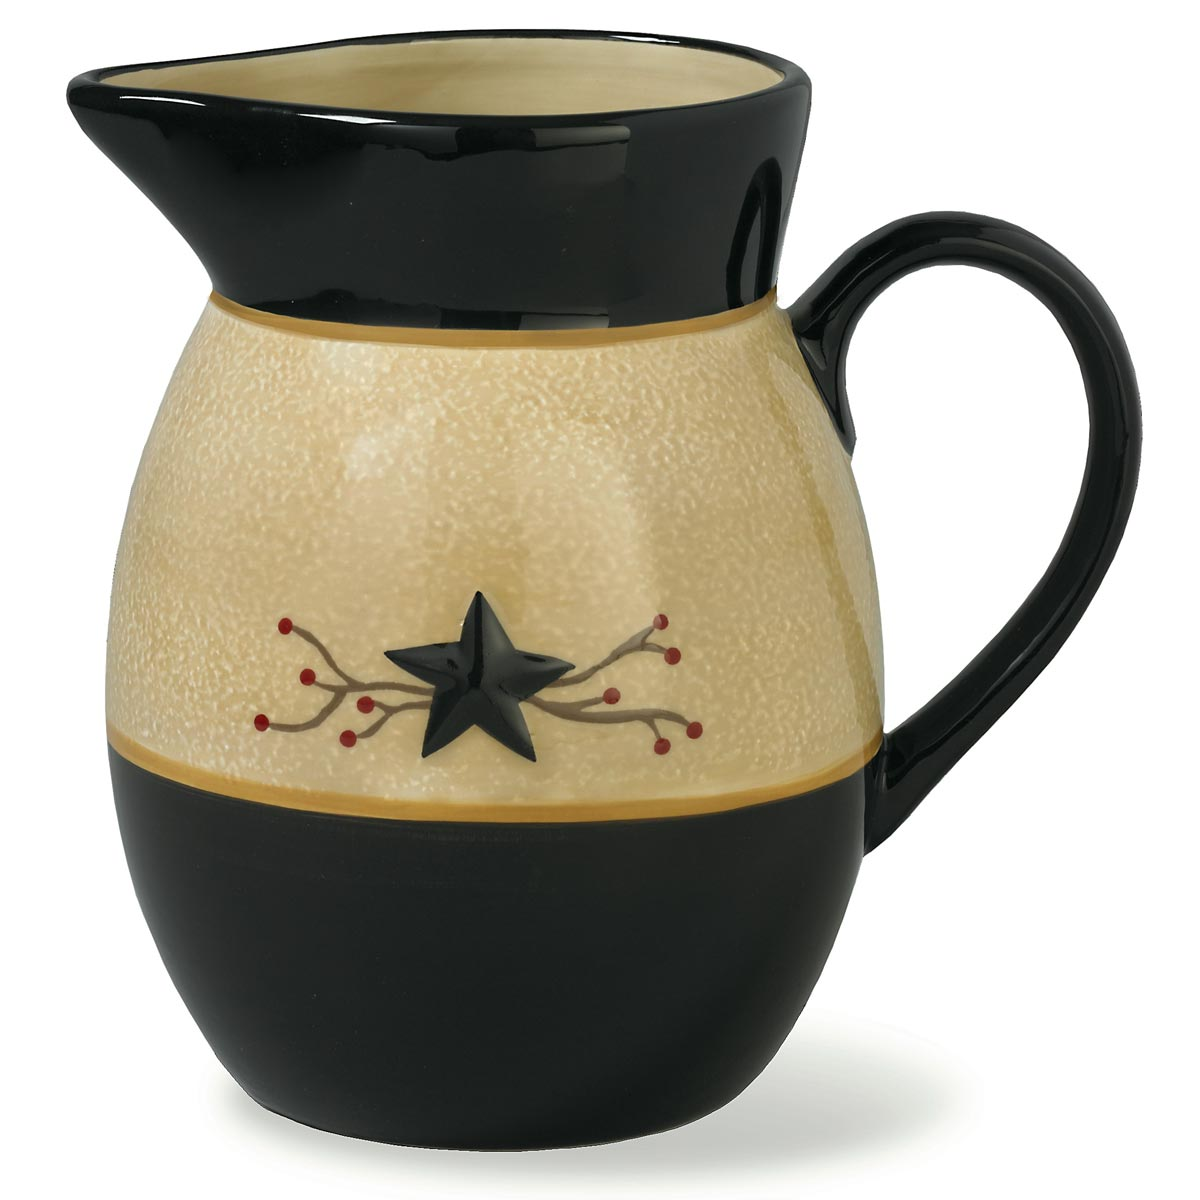 pkd-307-673-star-vine-pitcher-lrg